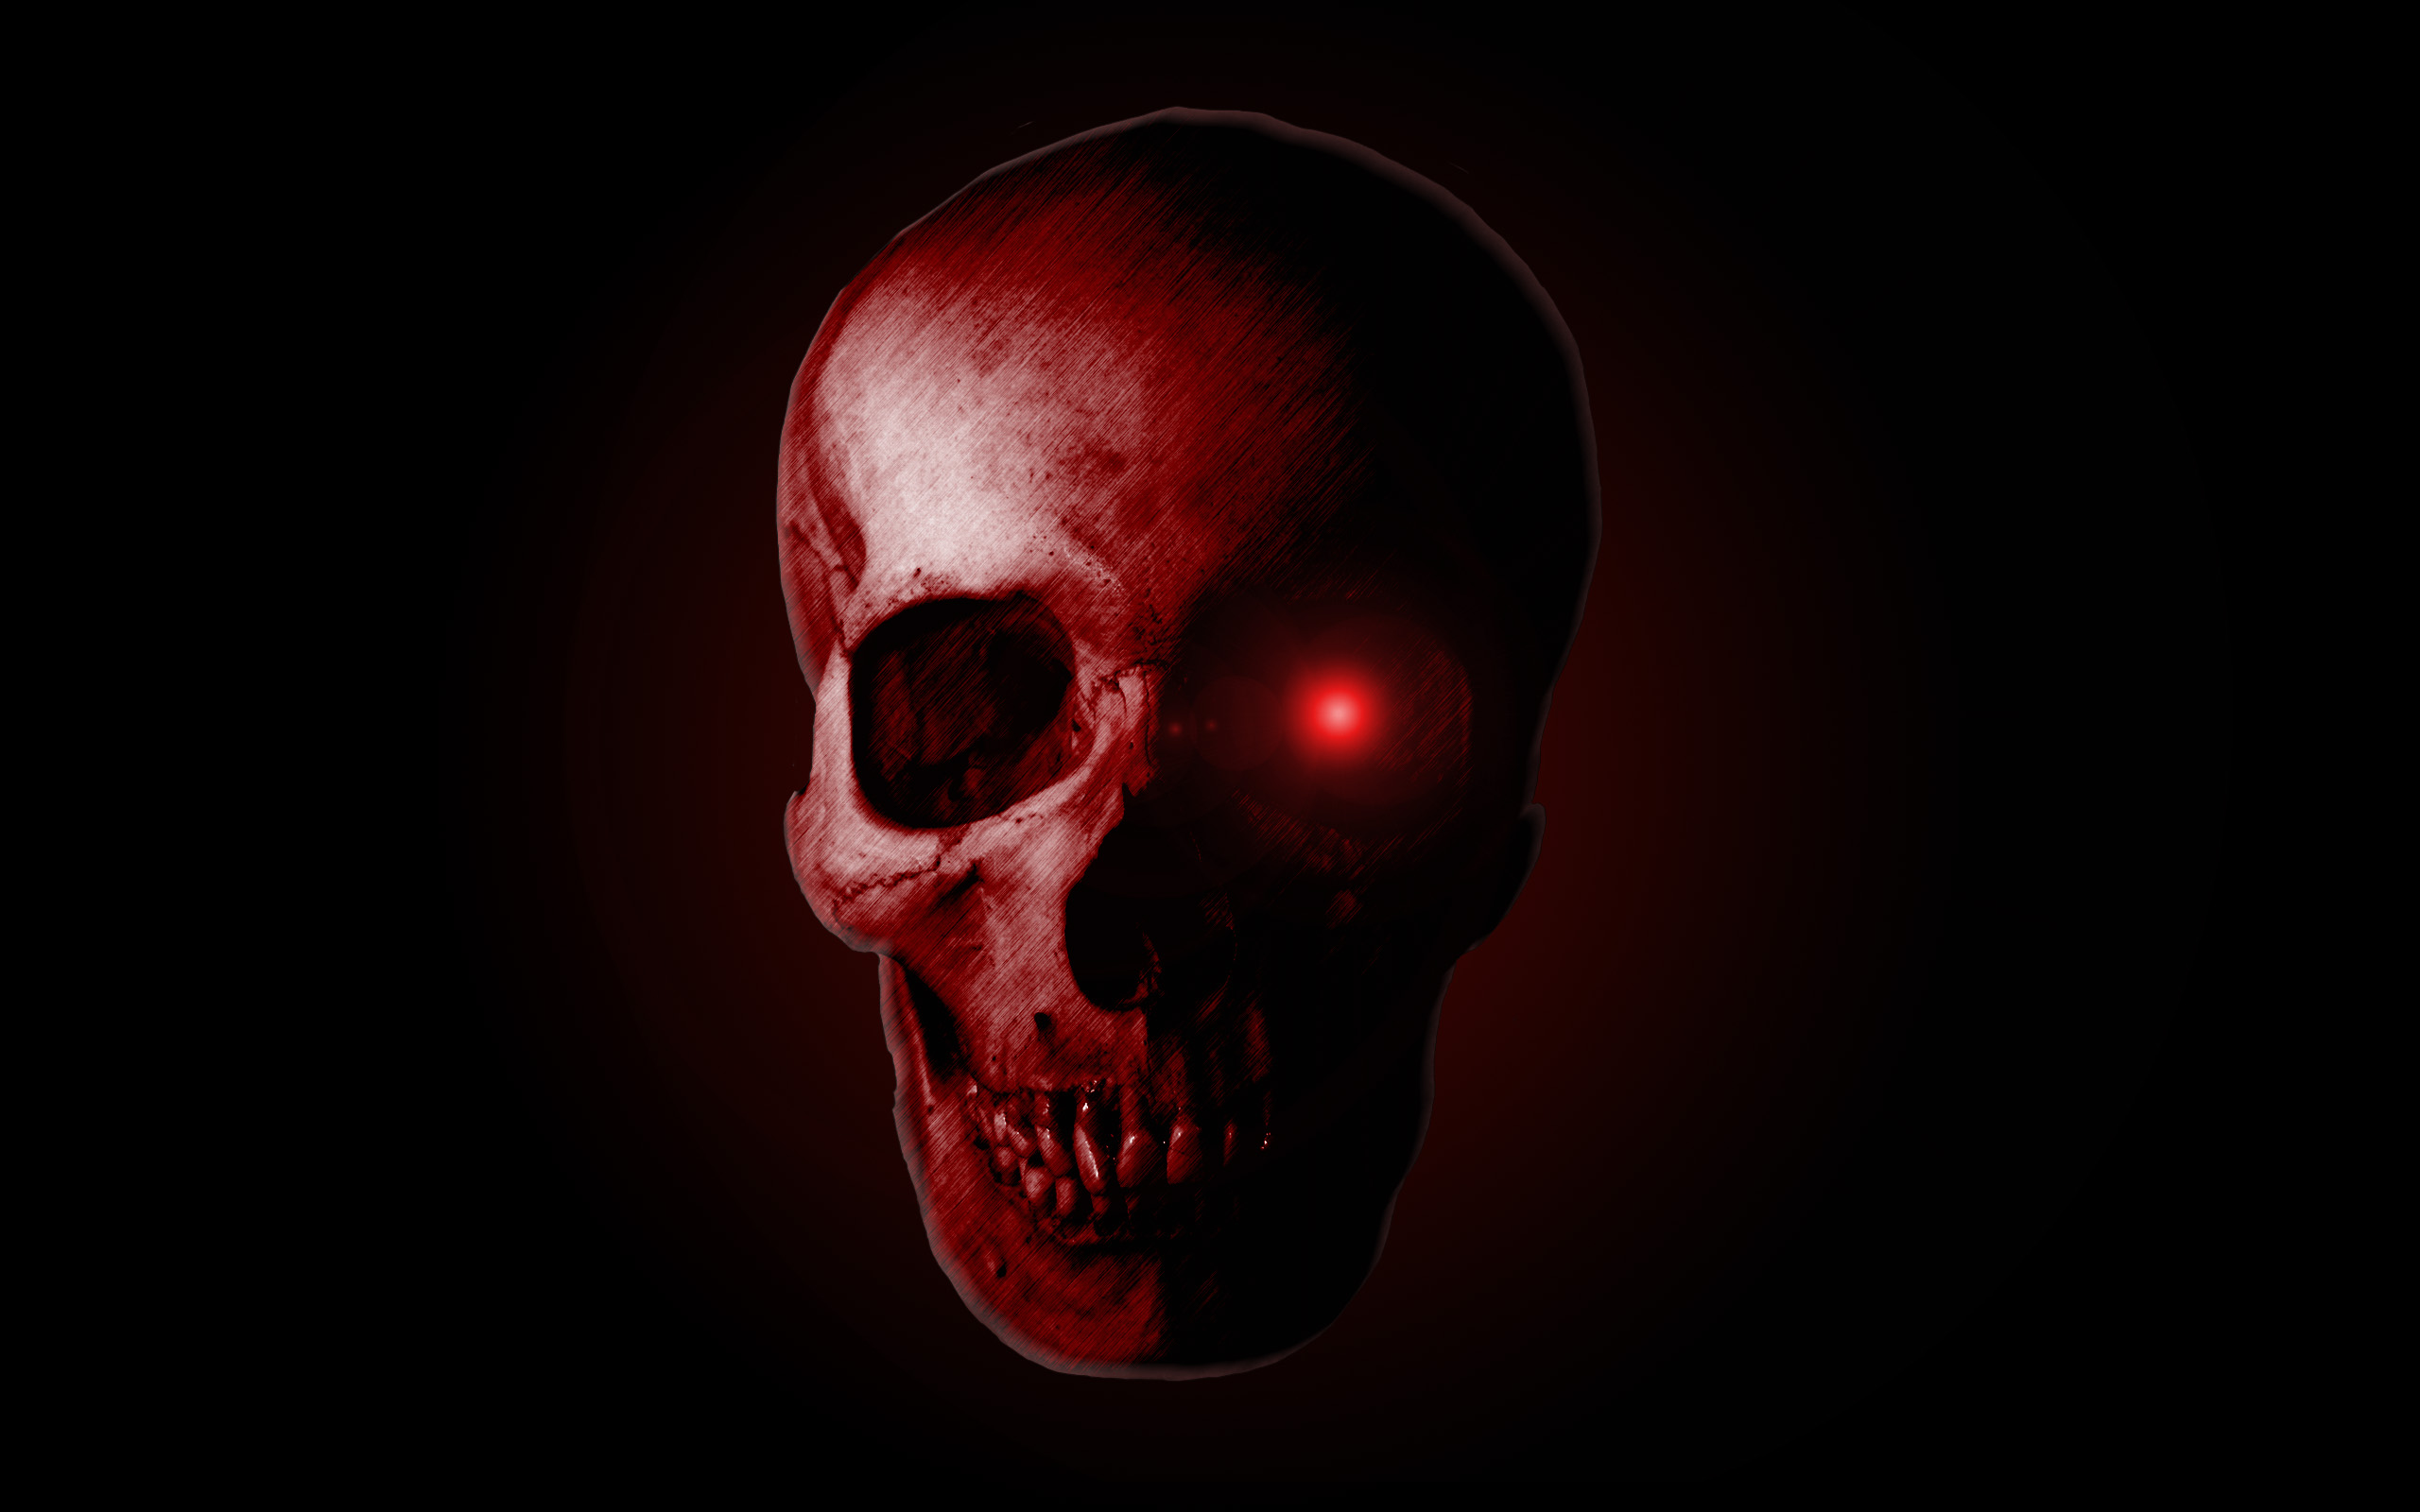 Wallpaper 166 Evil skull Red and Black Wallpapers 2560x1600